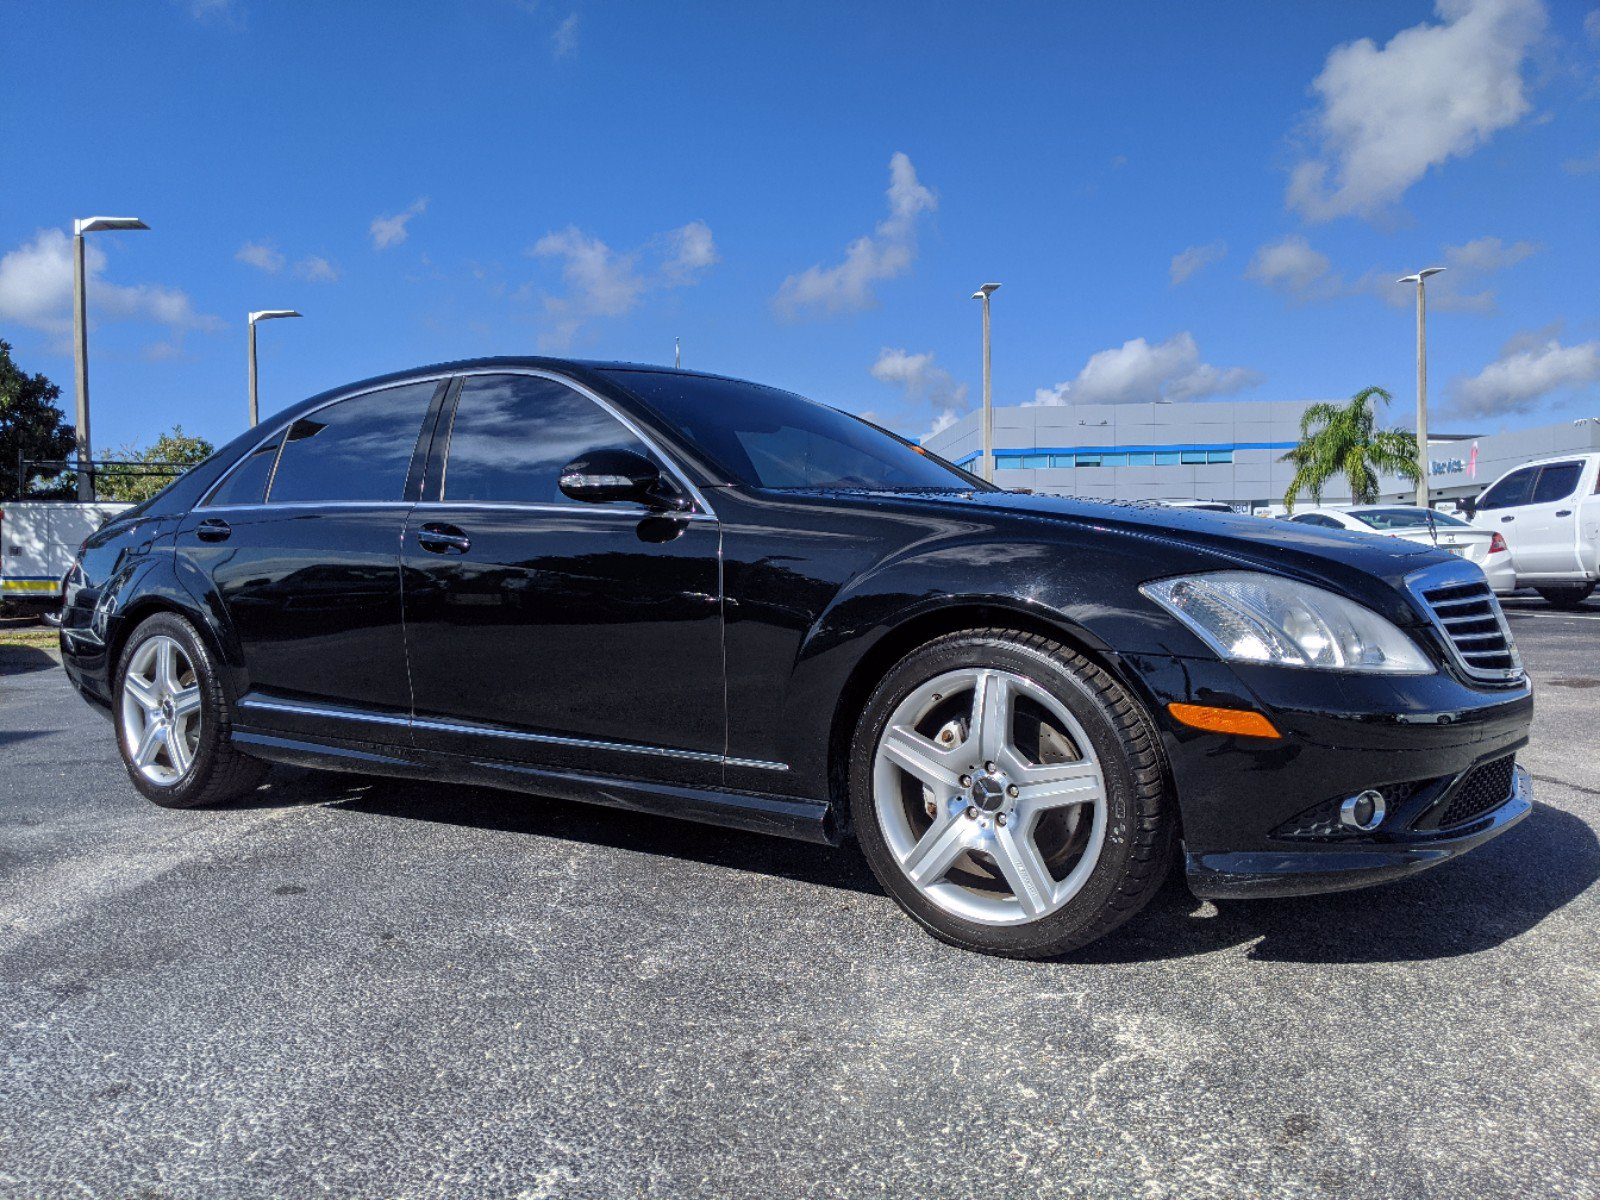 Pre-Owned 2007 Mercedes-Benz S-Class 5.5L V8 Sedan 4 Dr.